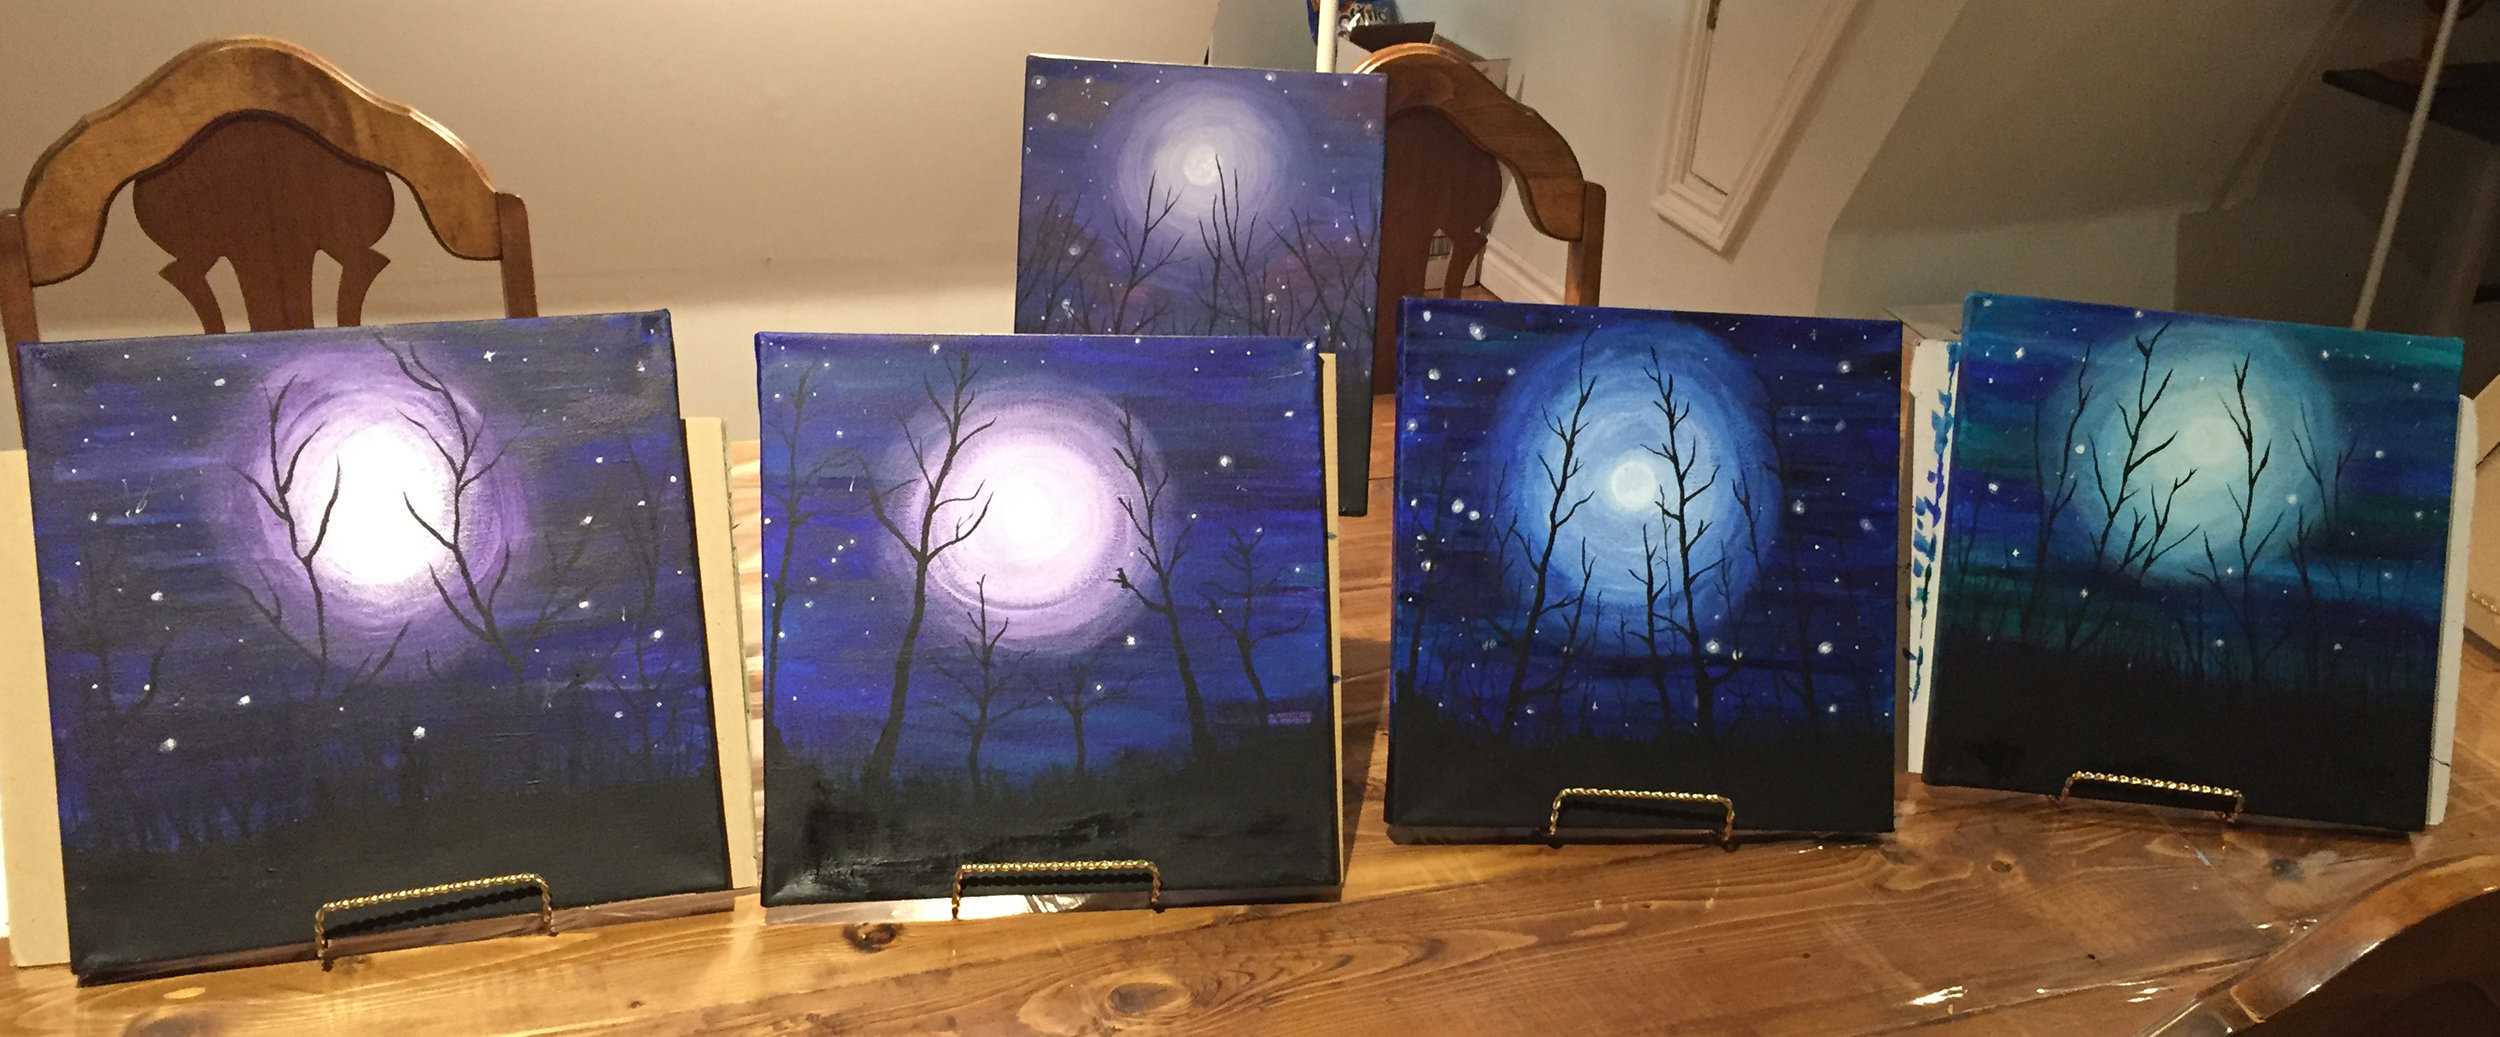 Student paintings - Winter Forest Night Sky